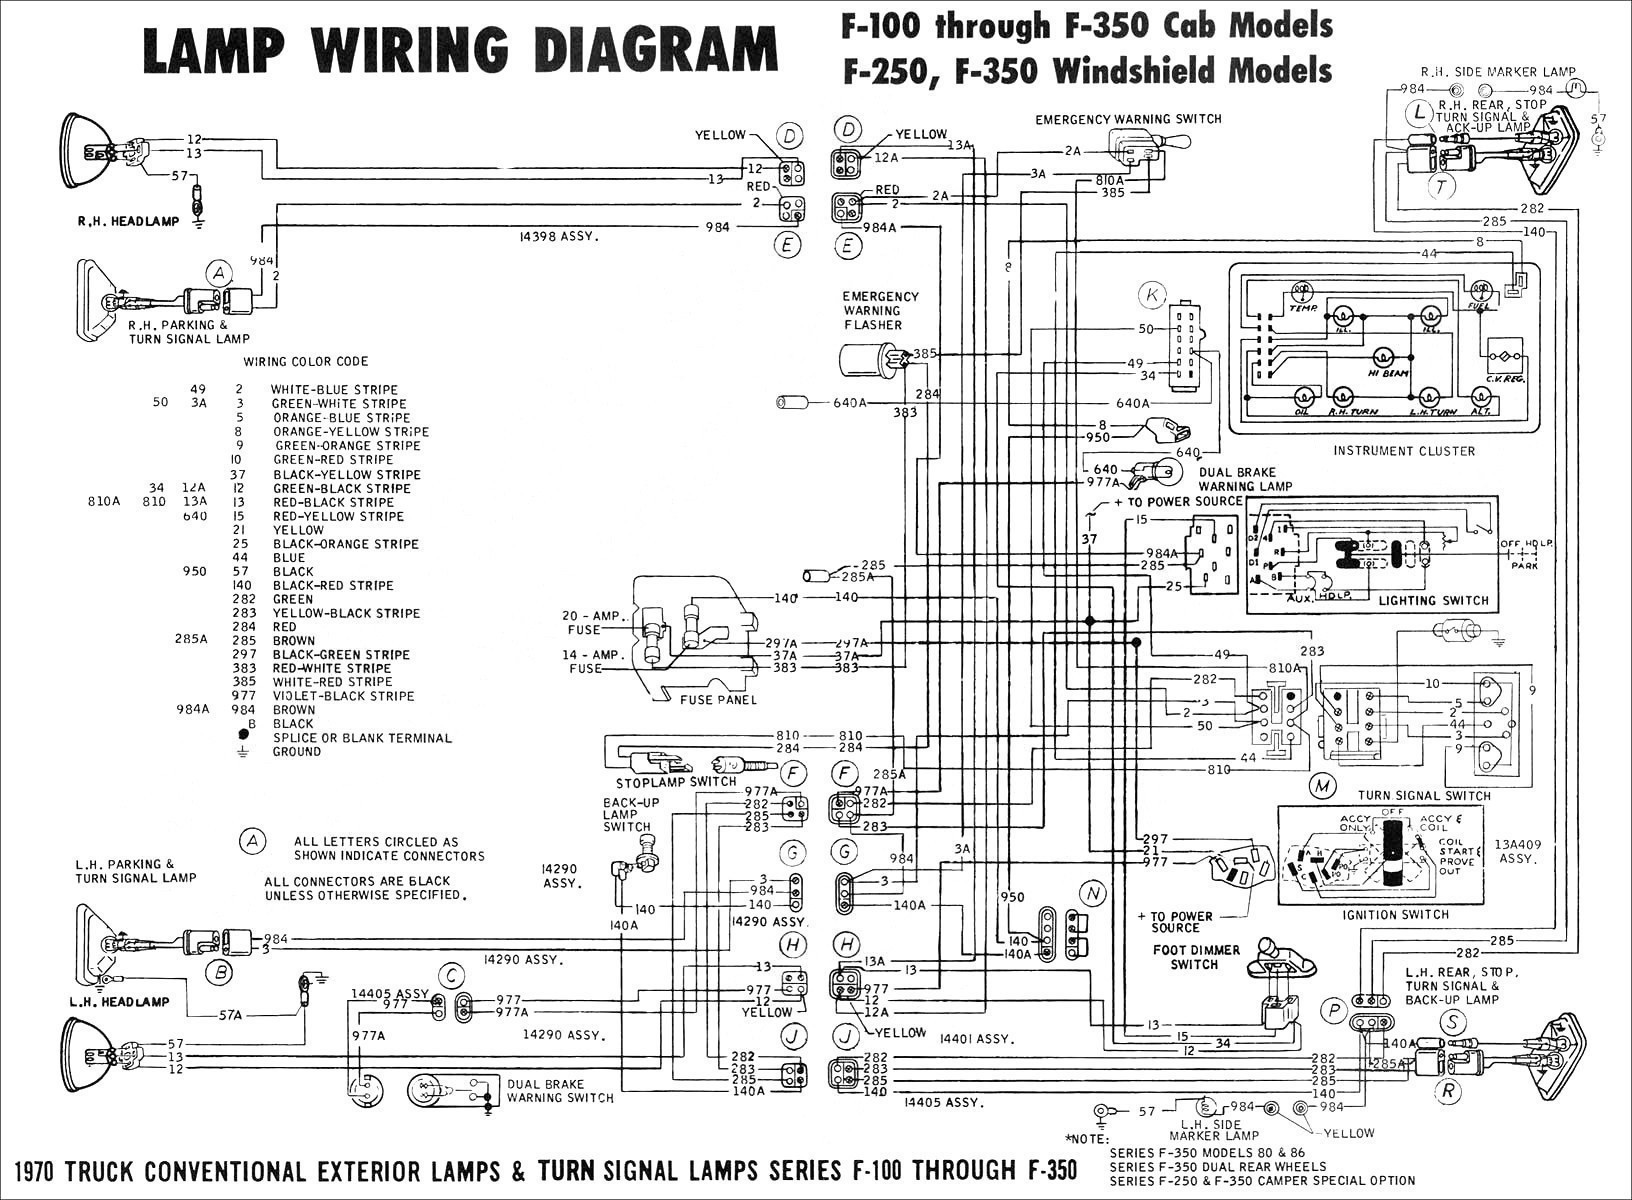 1986 Club Car Wiring Diagram St 6981] 04 Jetta Fuel Pump Relay Location Free Image About Of 1986 Club Car Wiring Diagram